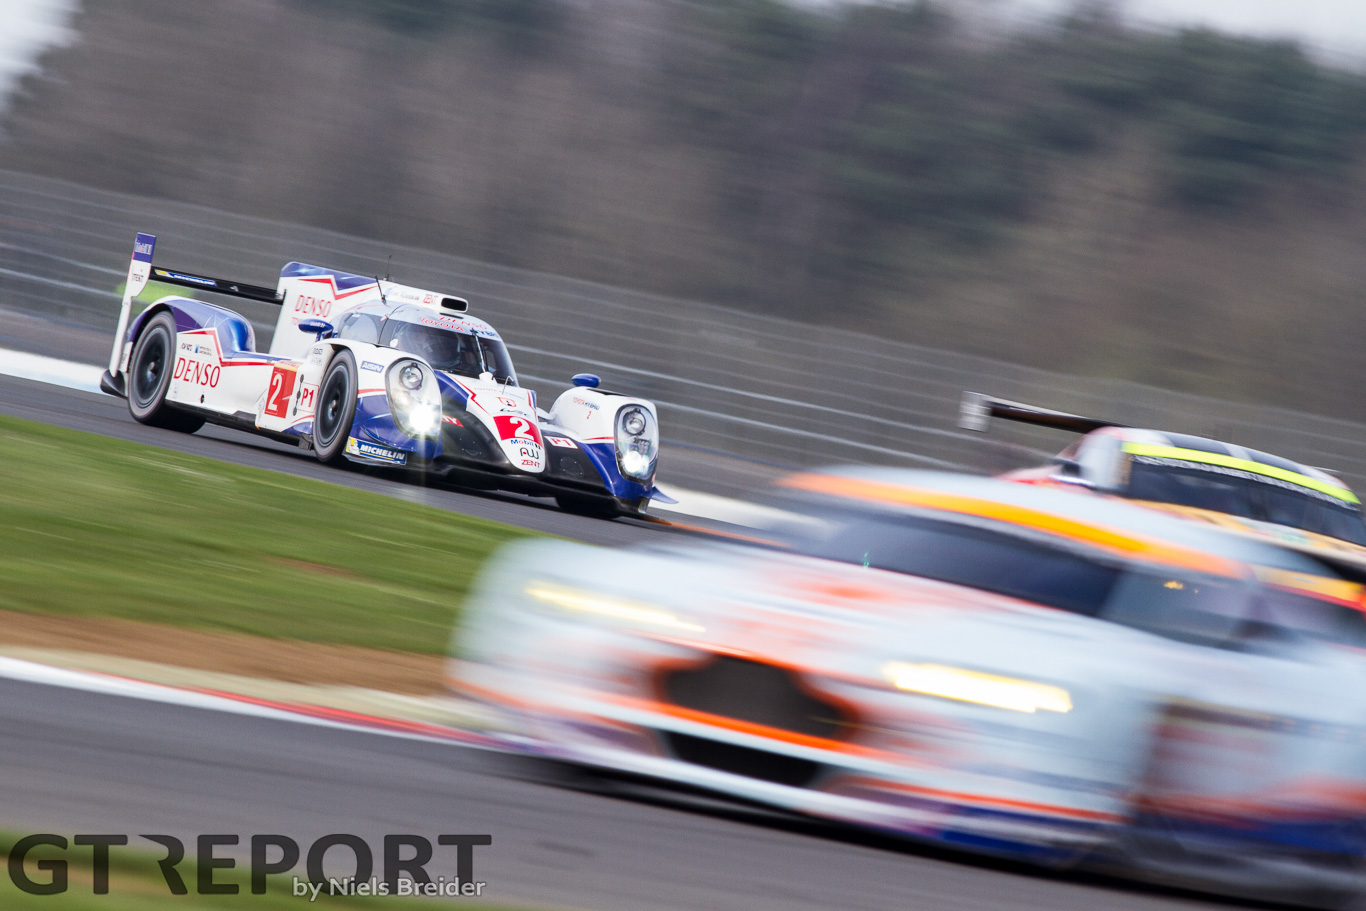 Weekend round-up: Blancpain GT, WEC, N24QR